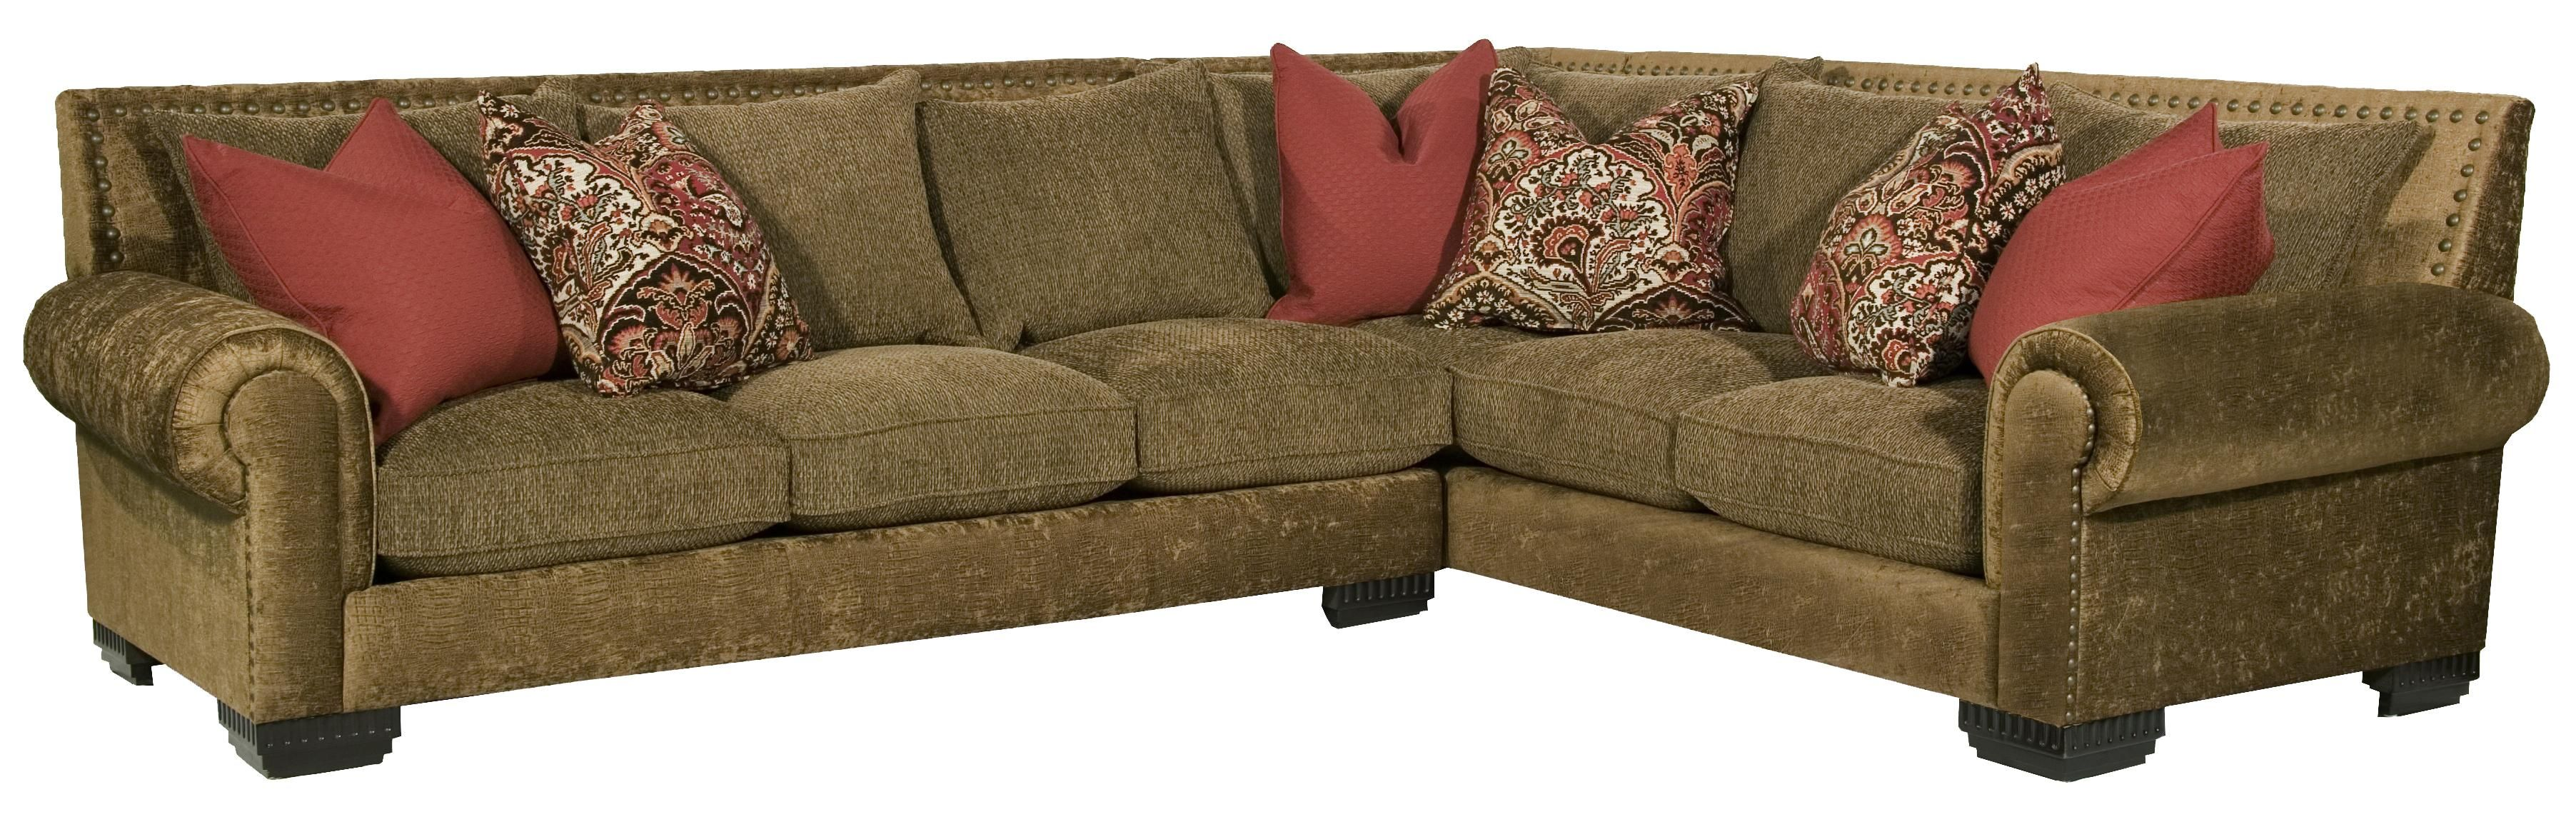 with sofas design furniture by couches stores down michaels sofa michael sectional goose cupboard morfurniture spokane robert com r cushions interior coast nice feather filled west